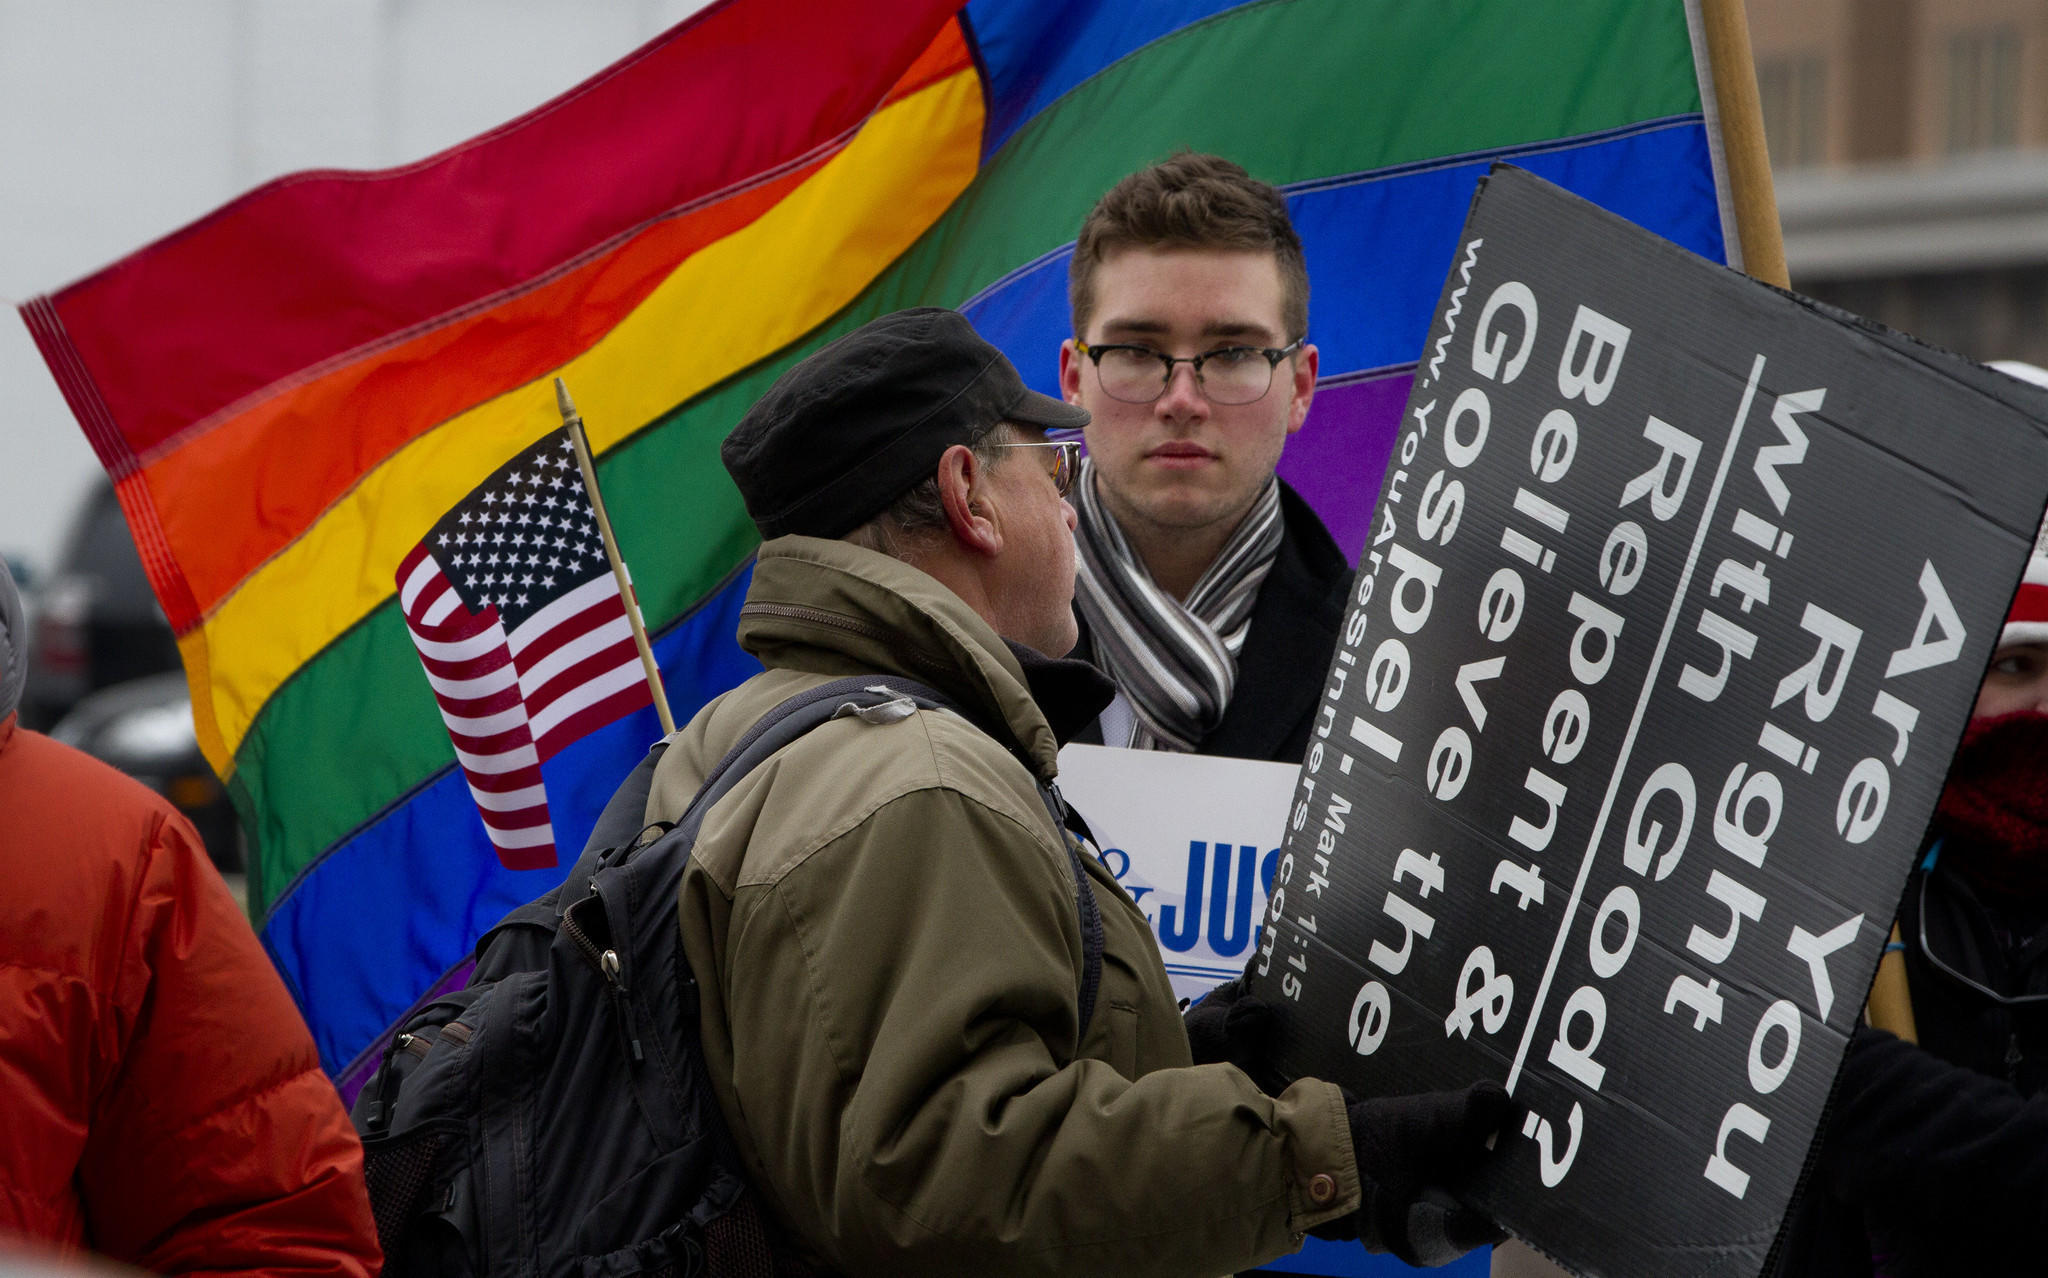 Spencer Geiger, of Virginia Beach, center, stands in support of gay marriage as Don Karns, of Hampton, voices his religious views in opposition to same-sex marriage, as a hearing is underway at the Norfolk federal court on the constitutionality of Virginia's gay marriage ban.